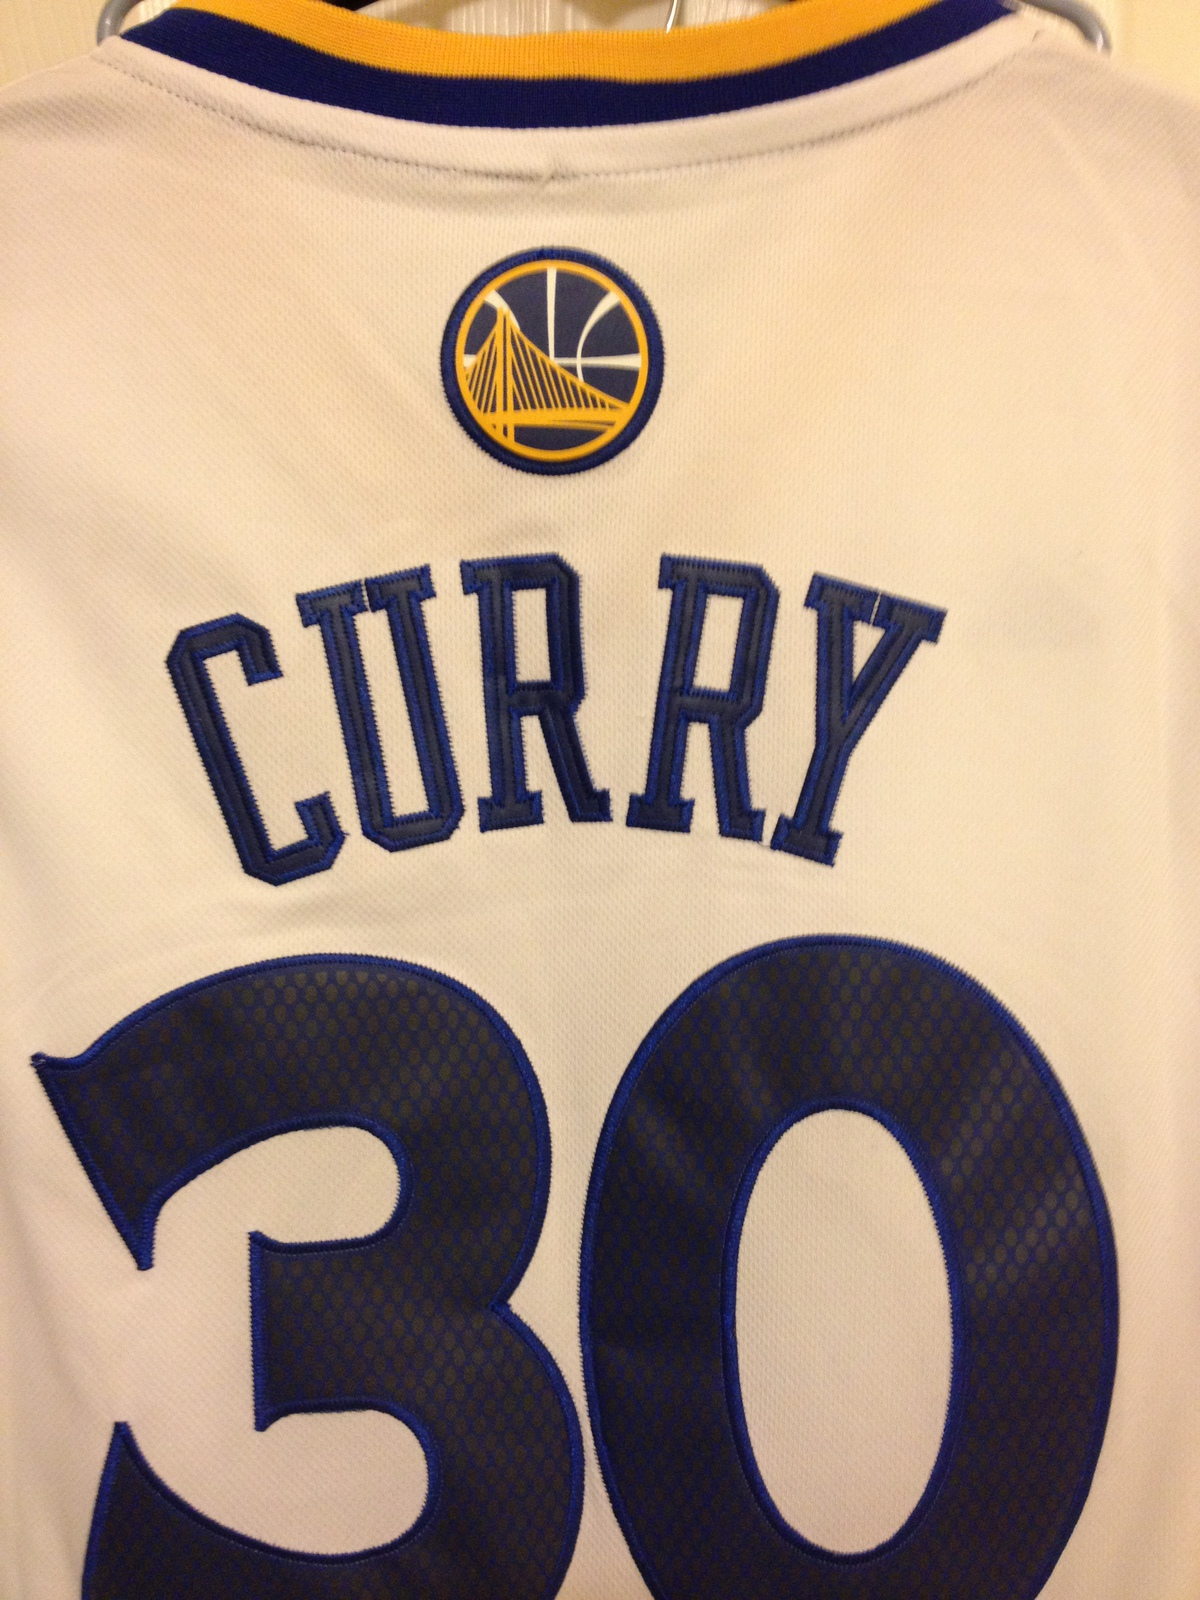 Stephen Curry Adidas Swingman Jersey image 6